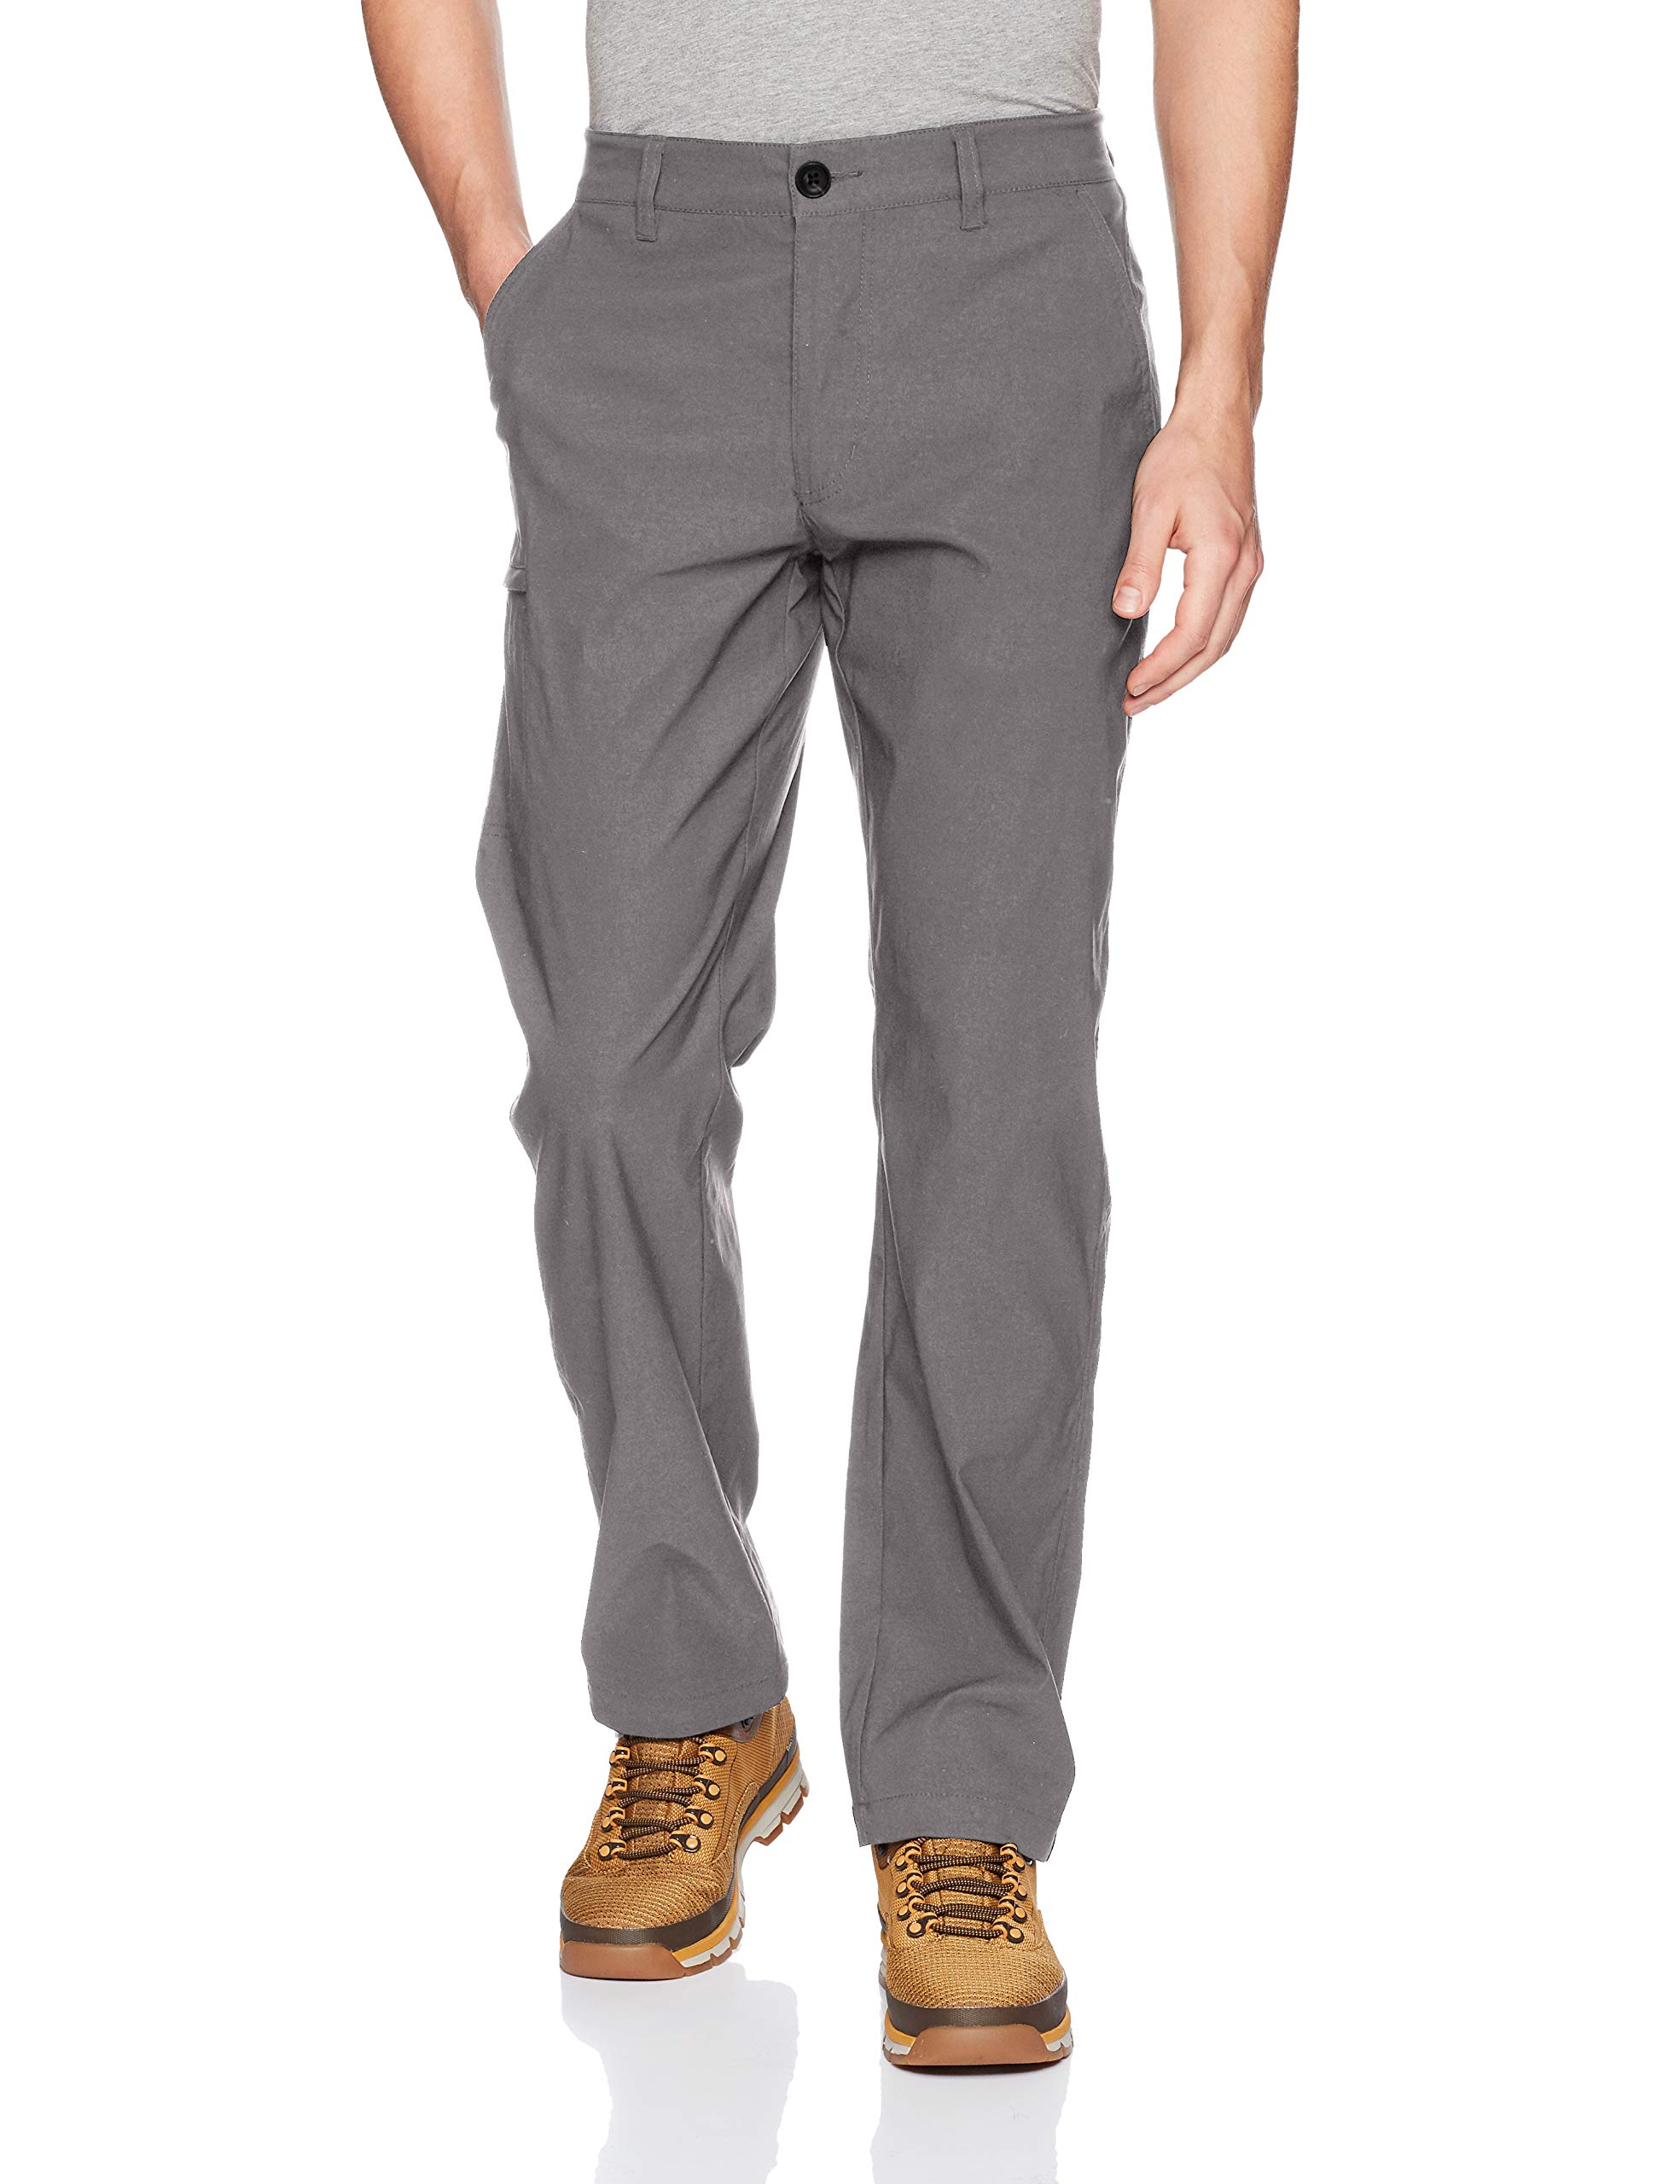 8be040d6850 UNIONBAY Men s Rainier Lightweight Comfort Travel Tech Chino Pants product  image